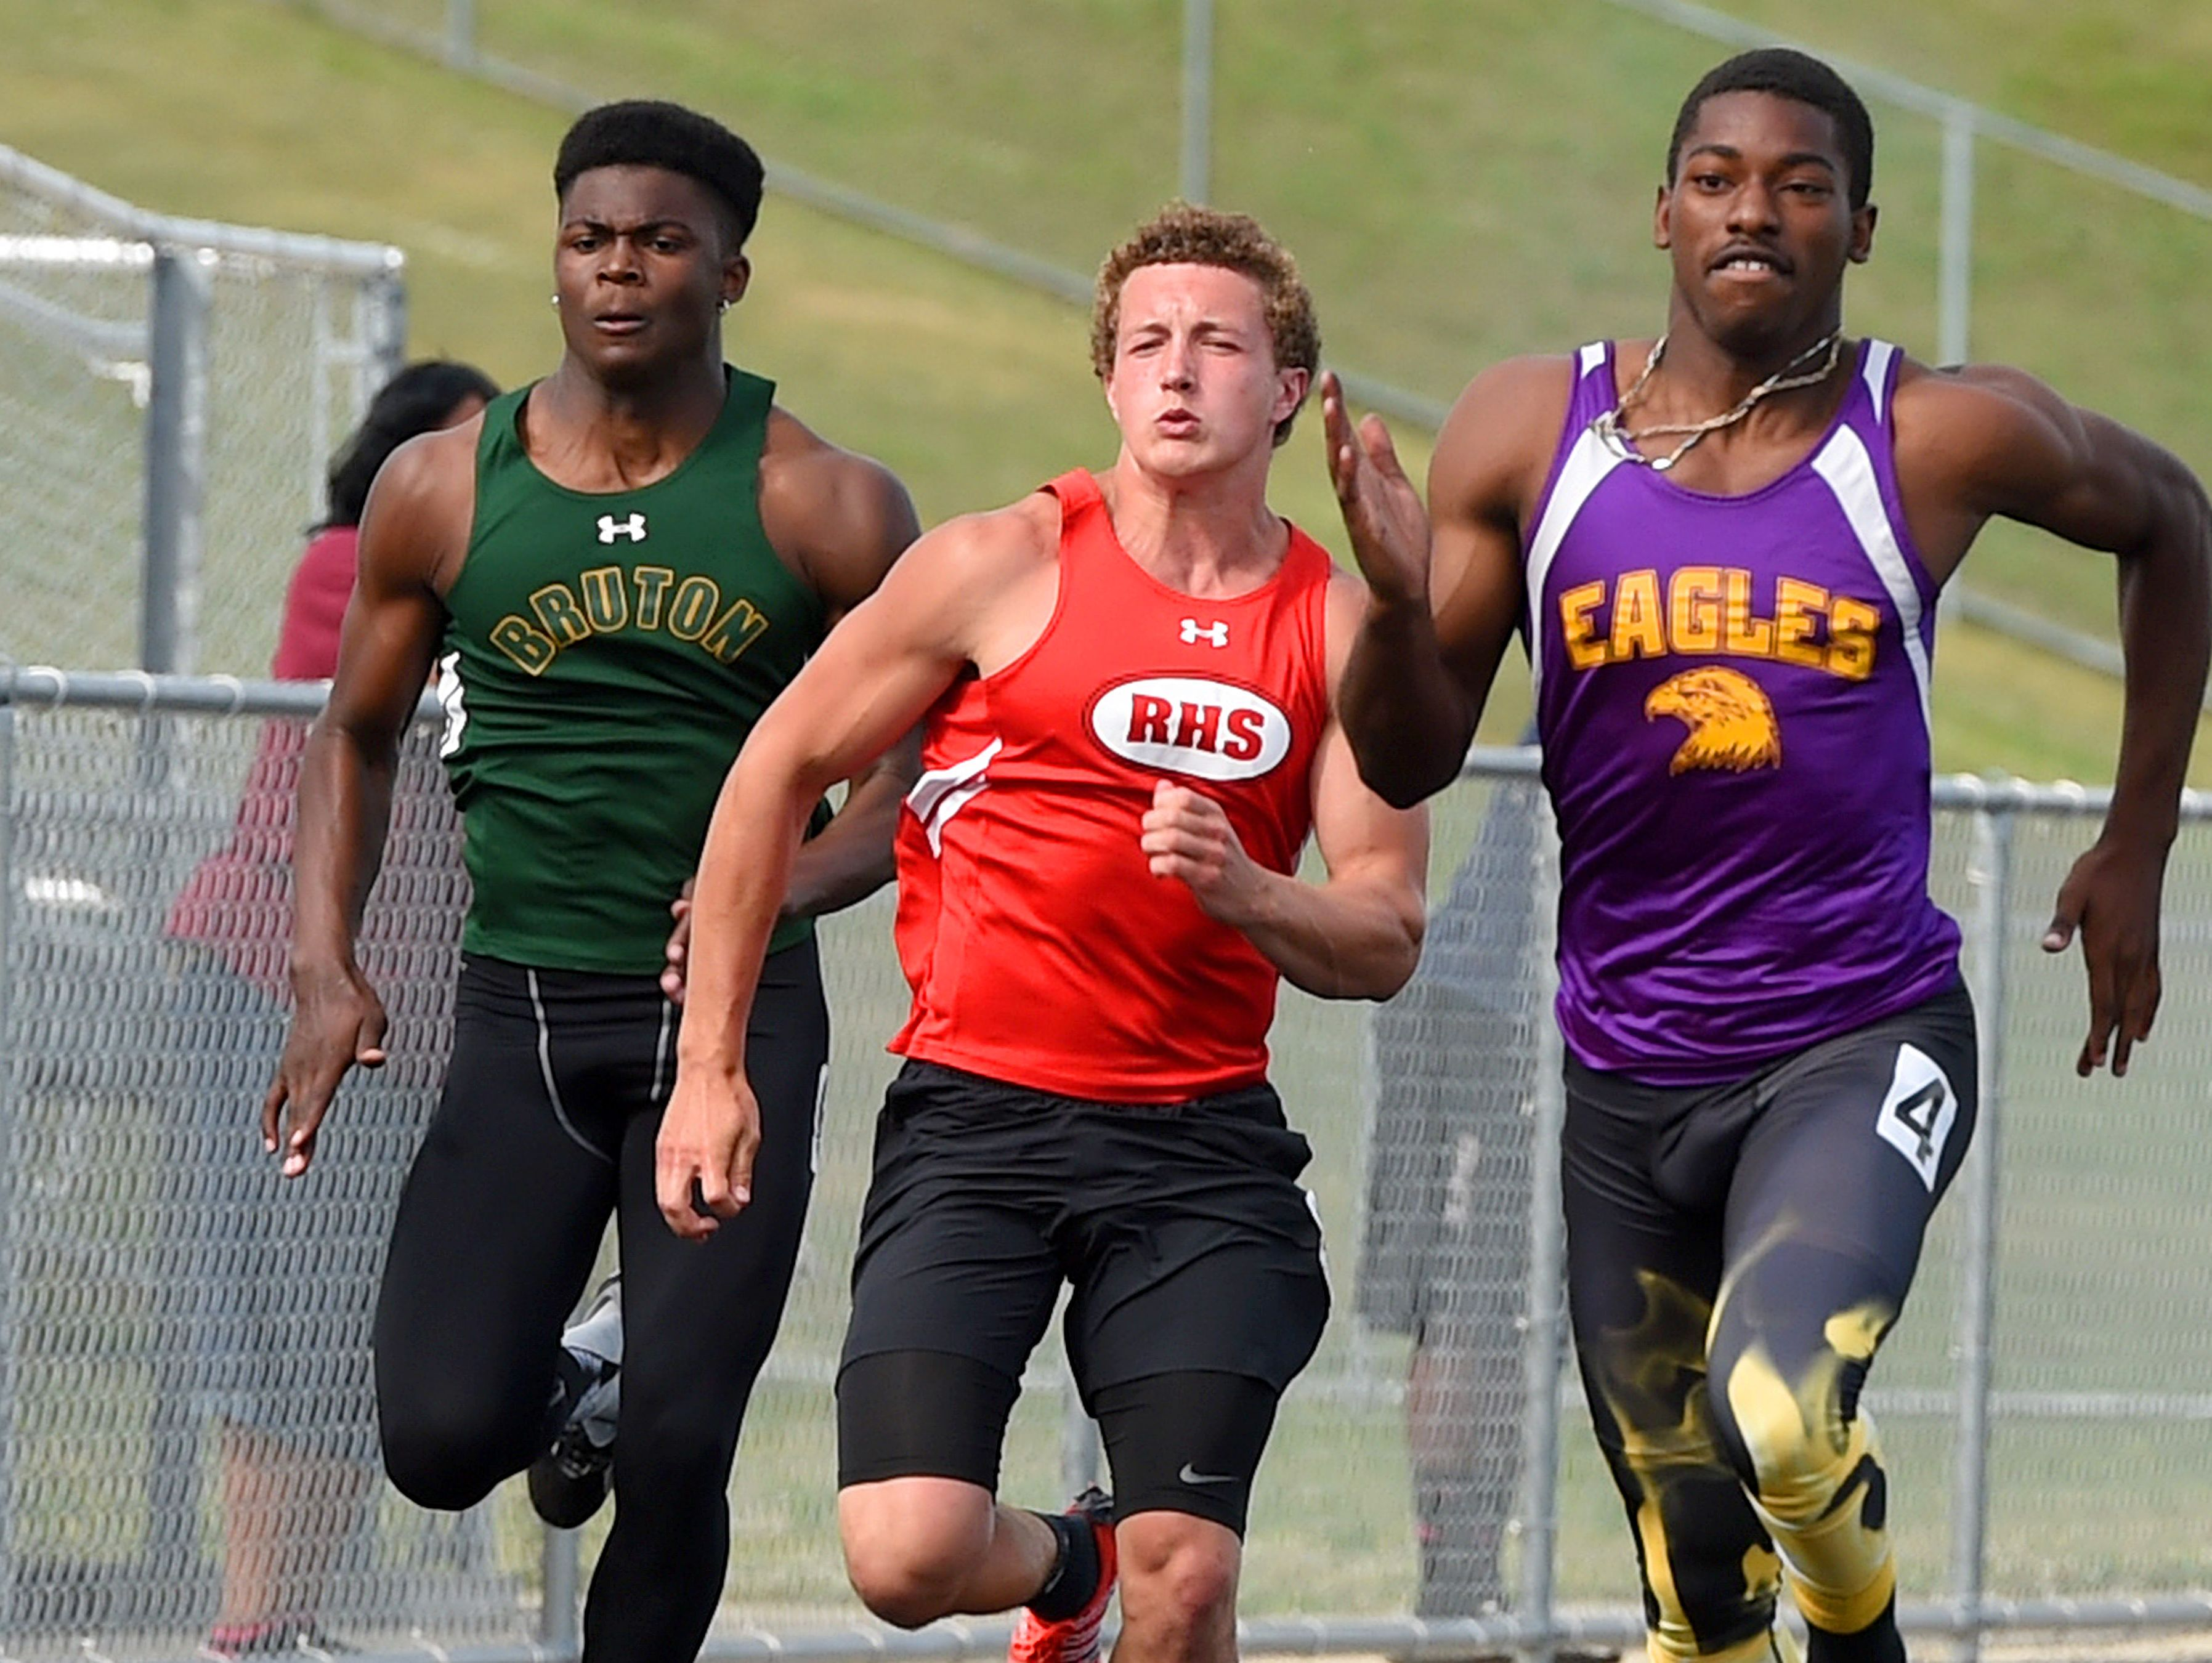 Riverheads' Landon Diehl (center) competes in the boys' 100 meter dash trials. The Region 2A East track and field championships were held at East Rockingham High School near Elkton on Wednesday, May 27, 2015.